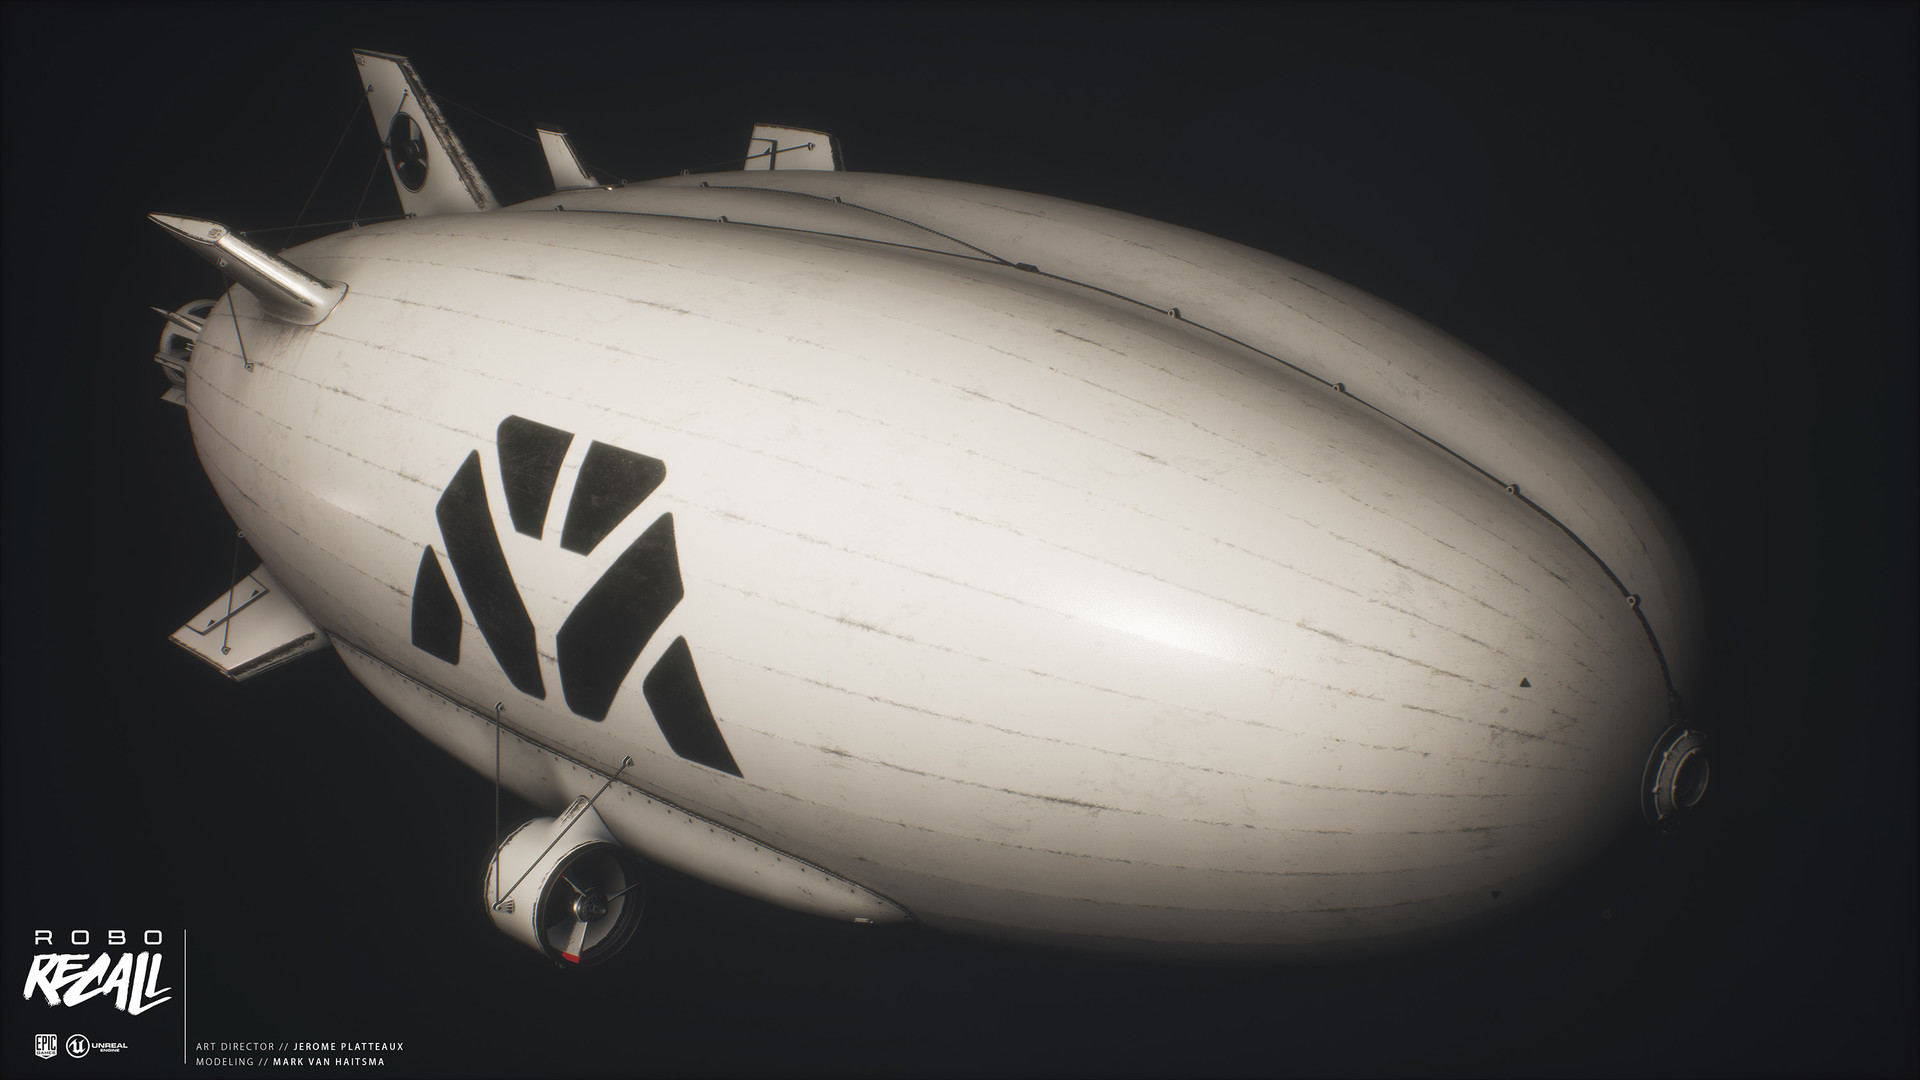 Mark van haitsma blimp 02